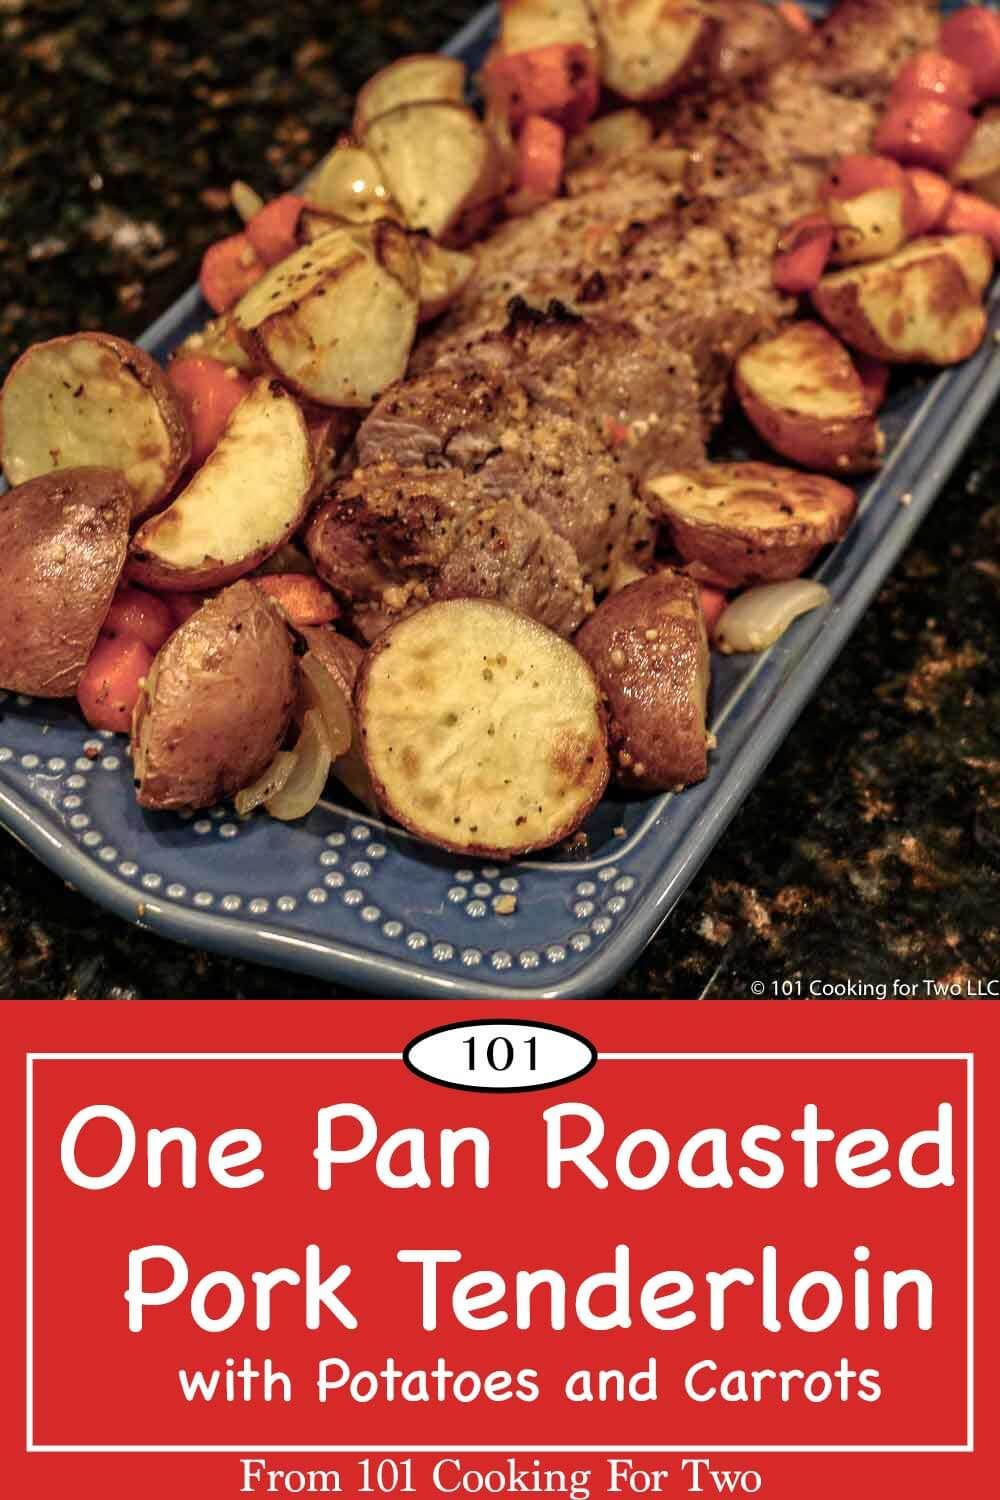 One Pan Roasted Pork Tenderloin with Potatoes and Carrots | 101 Cooking For Two